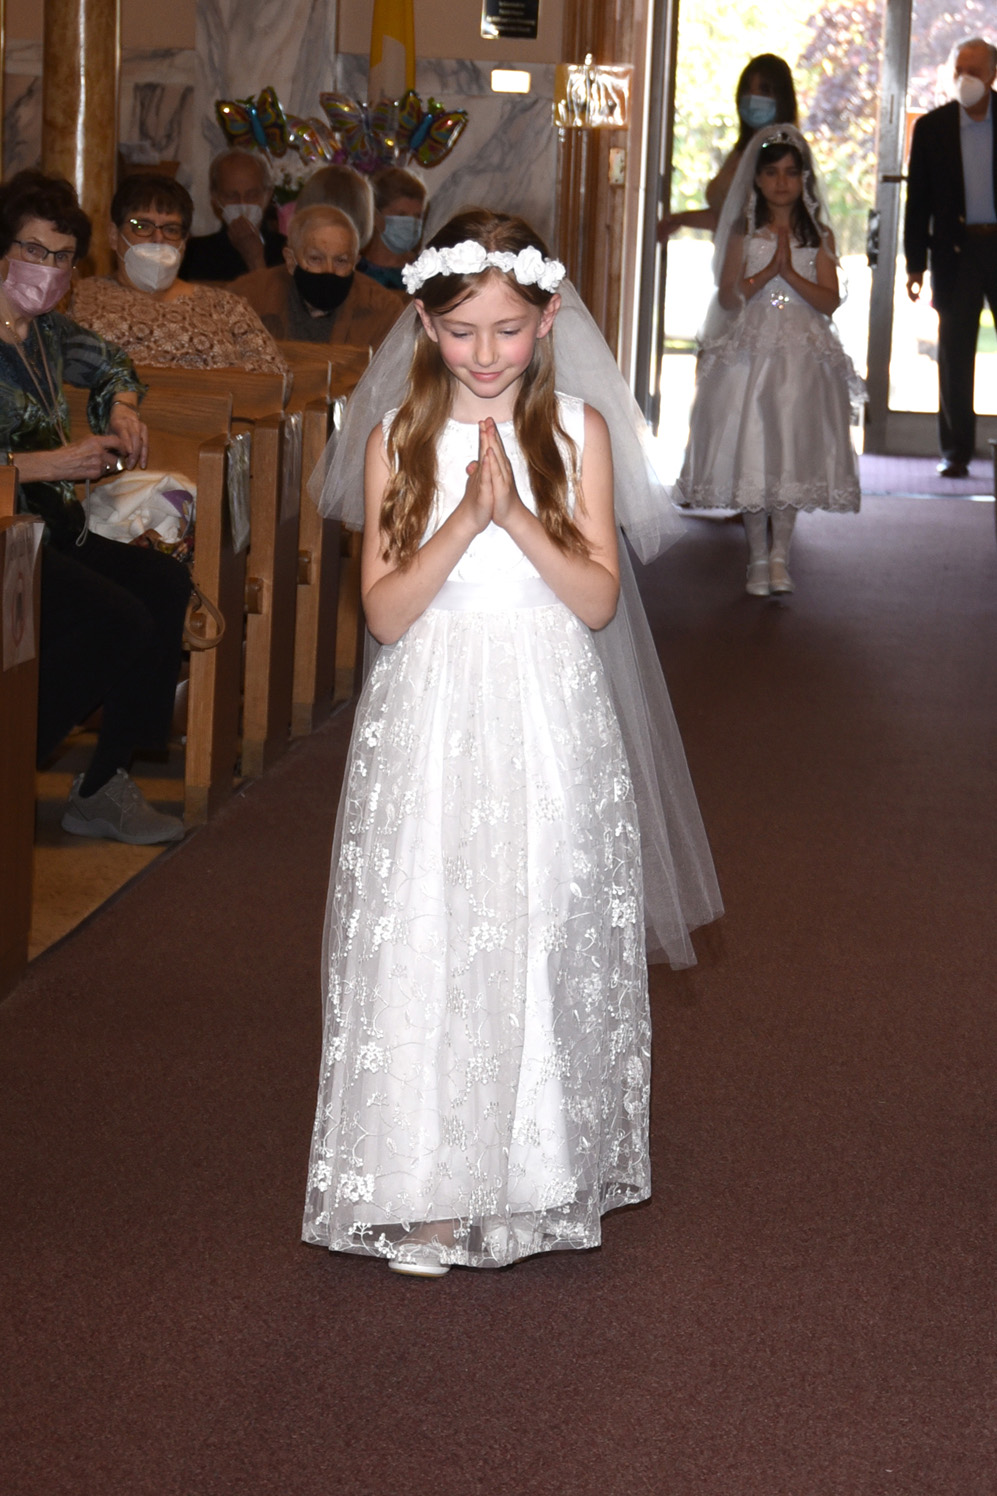 FIRST-COMMUNION-MAY-16-2021-46